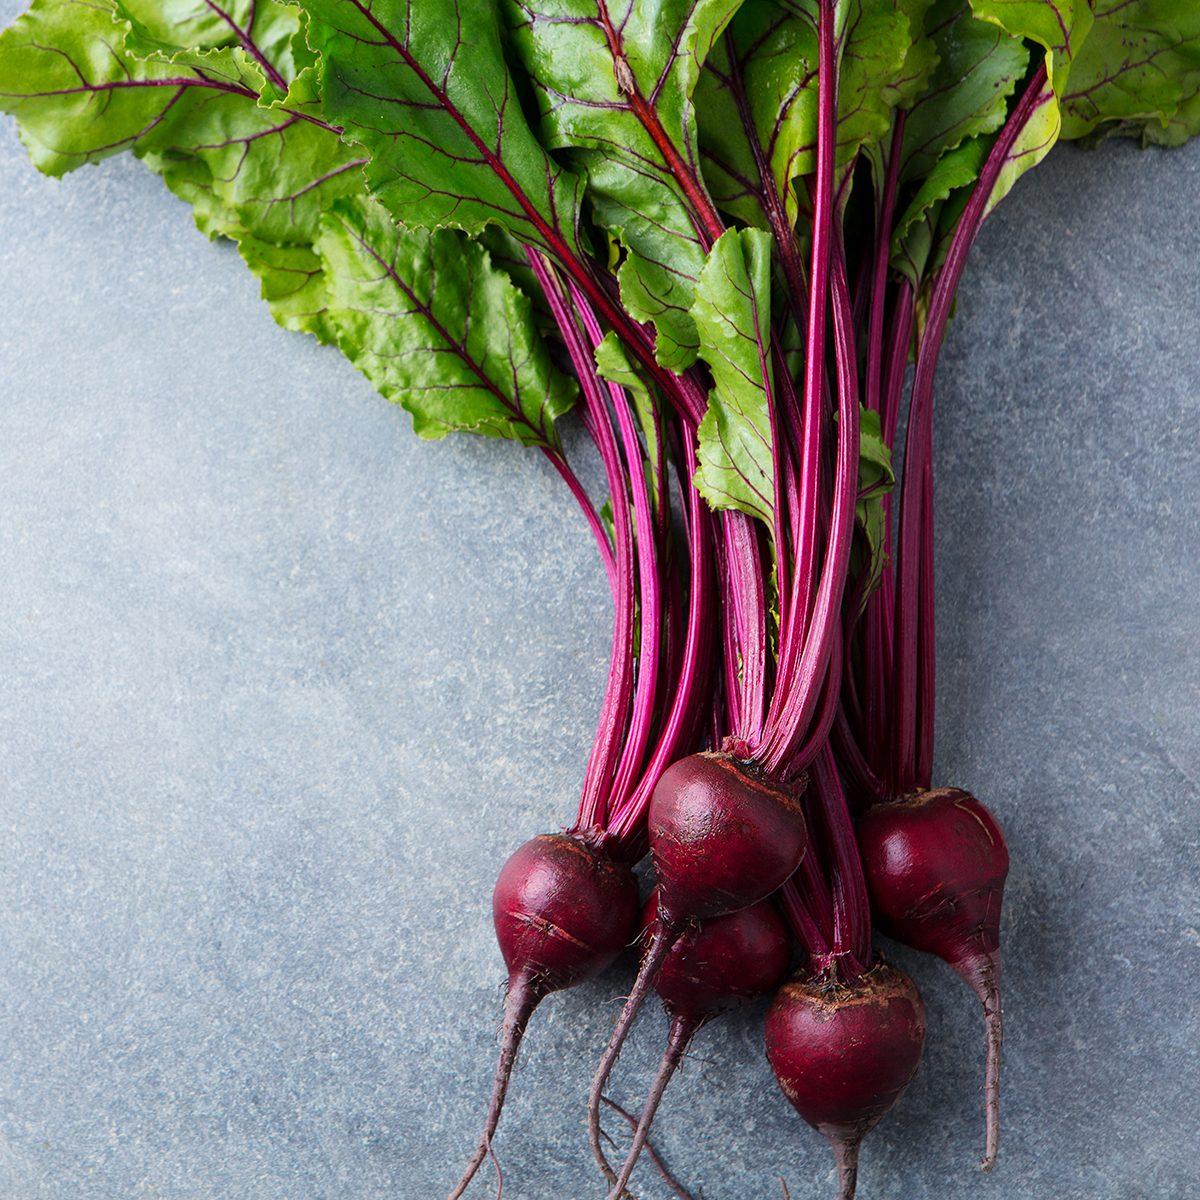 Beet, beetroot bunch on grey stone background.